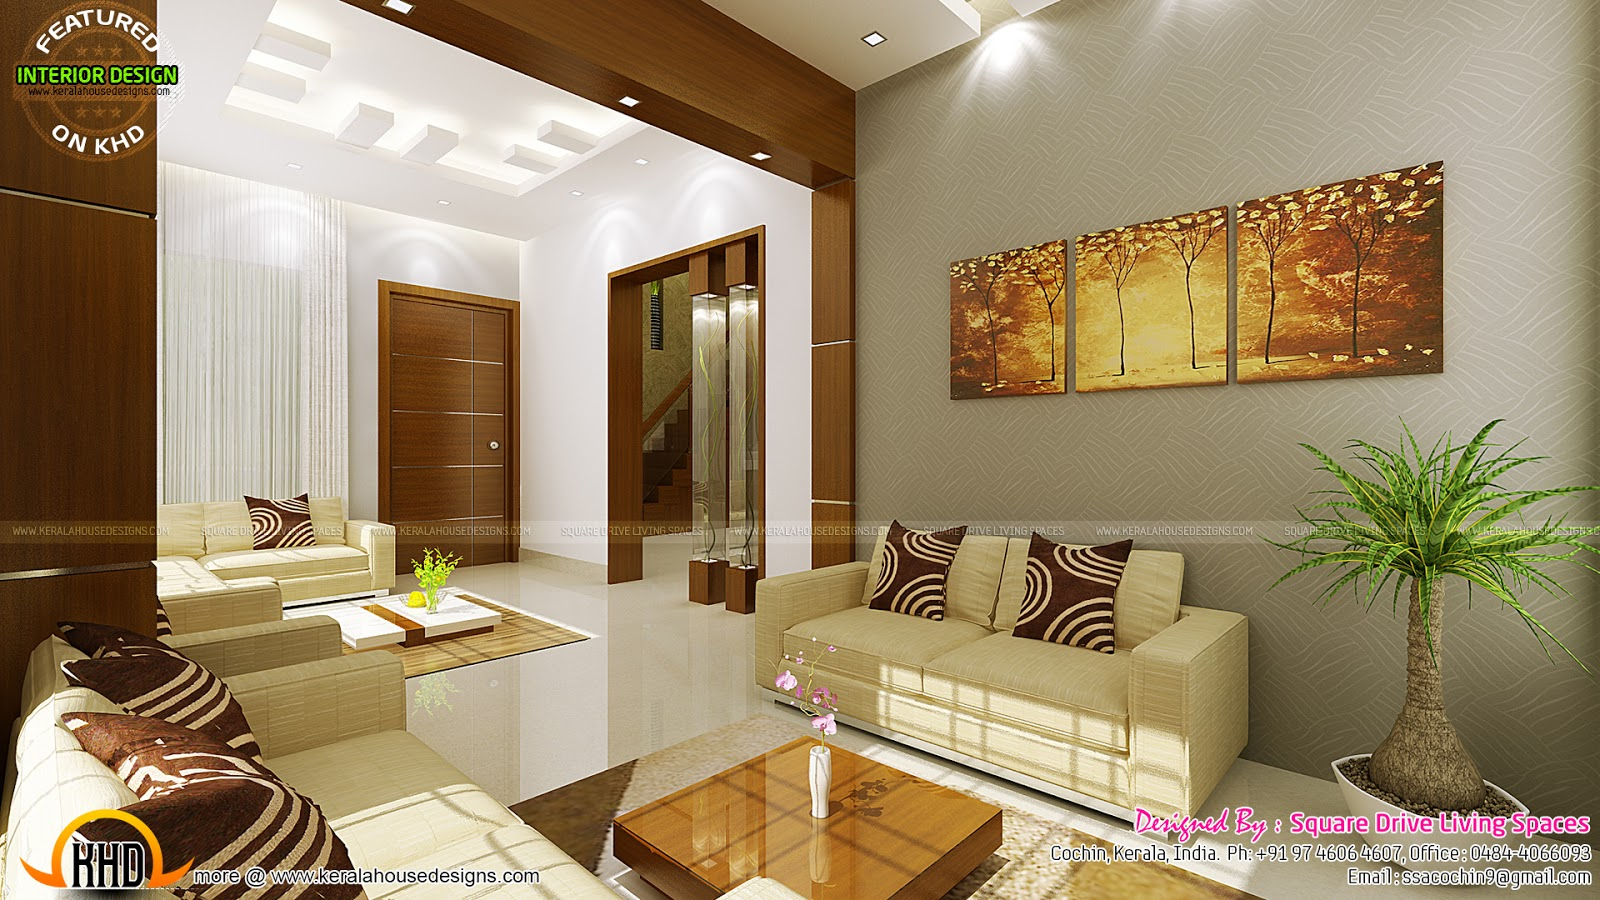 Contemporary kitchen dining and living room kerala home House model interior design